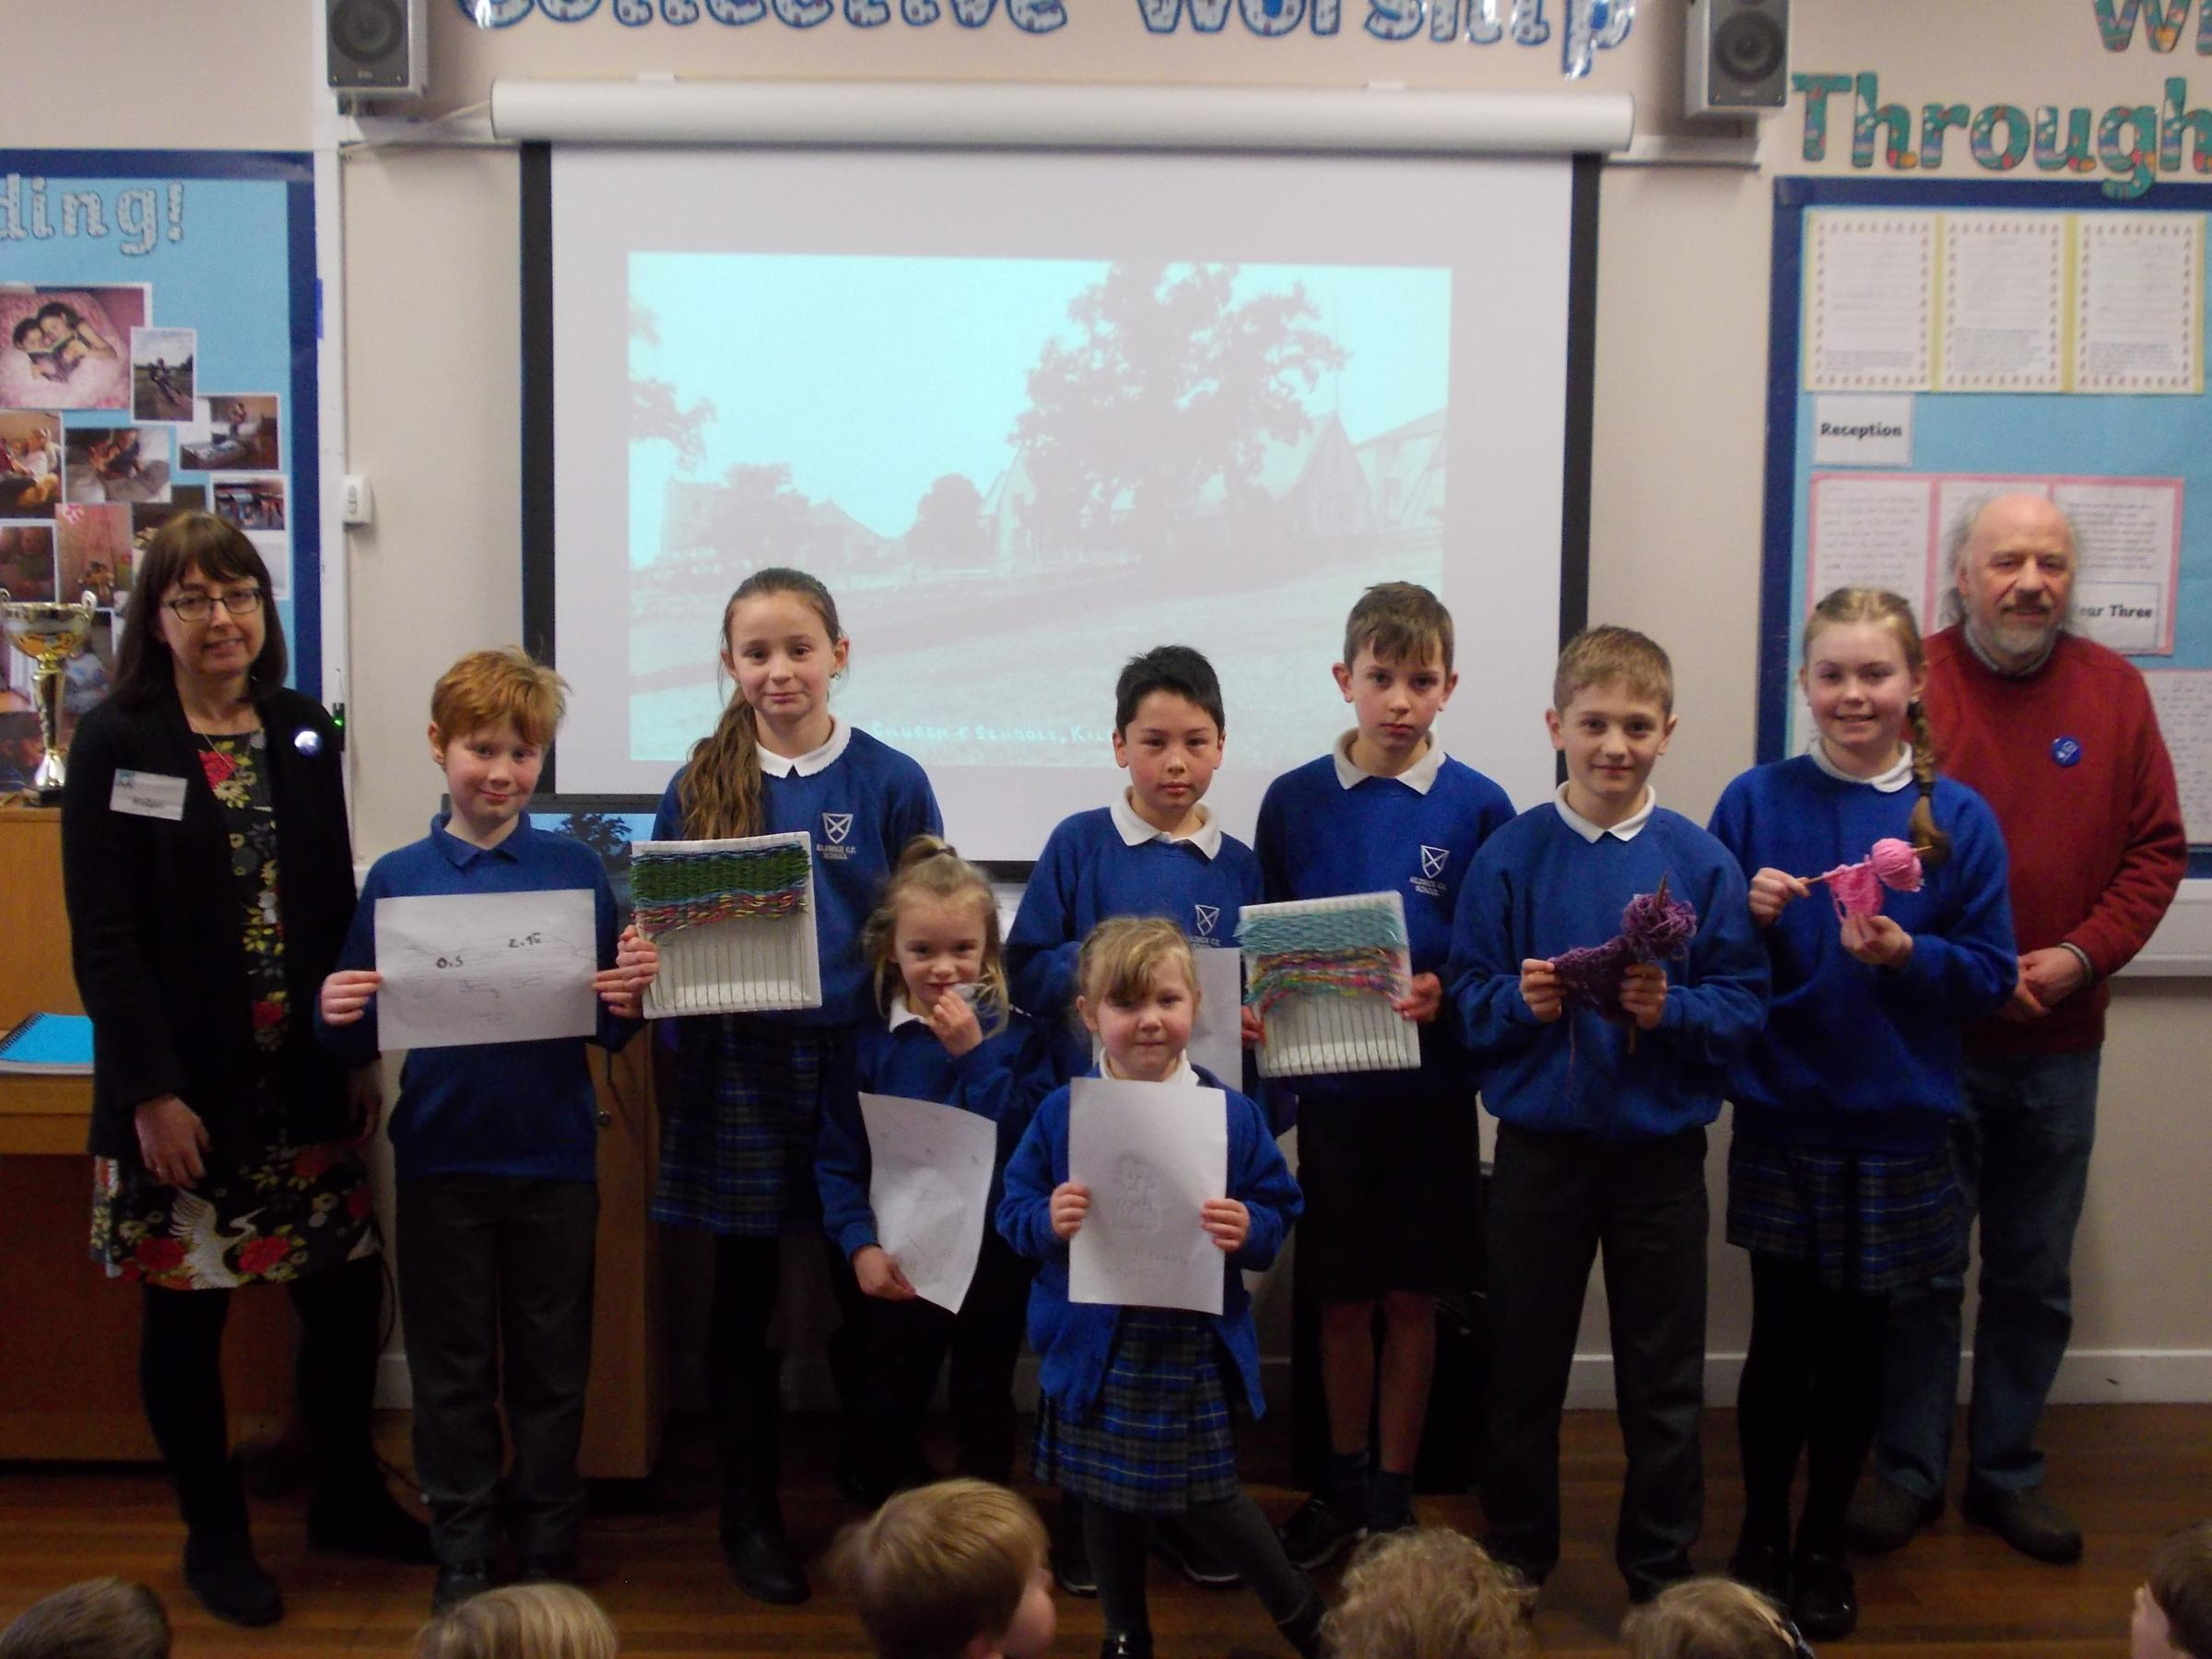 Local historians Graham Taylor and Helen Moran visited Kildwick Primary School to talk about the Kildwick and Farnhill Volunteers Project